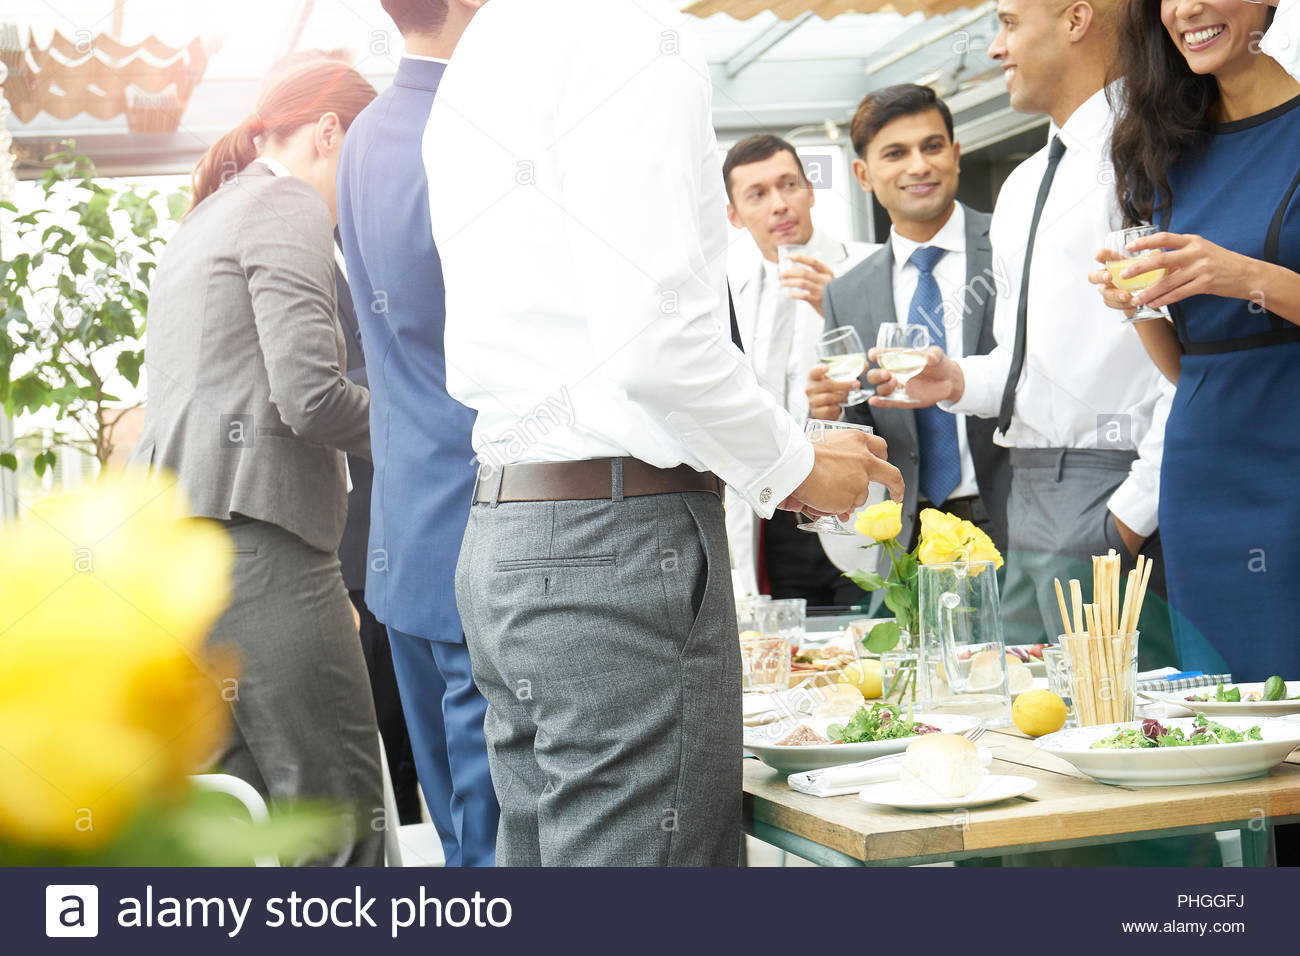 Businesspeople toasting in restaurant - Stock Image